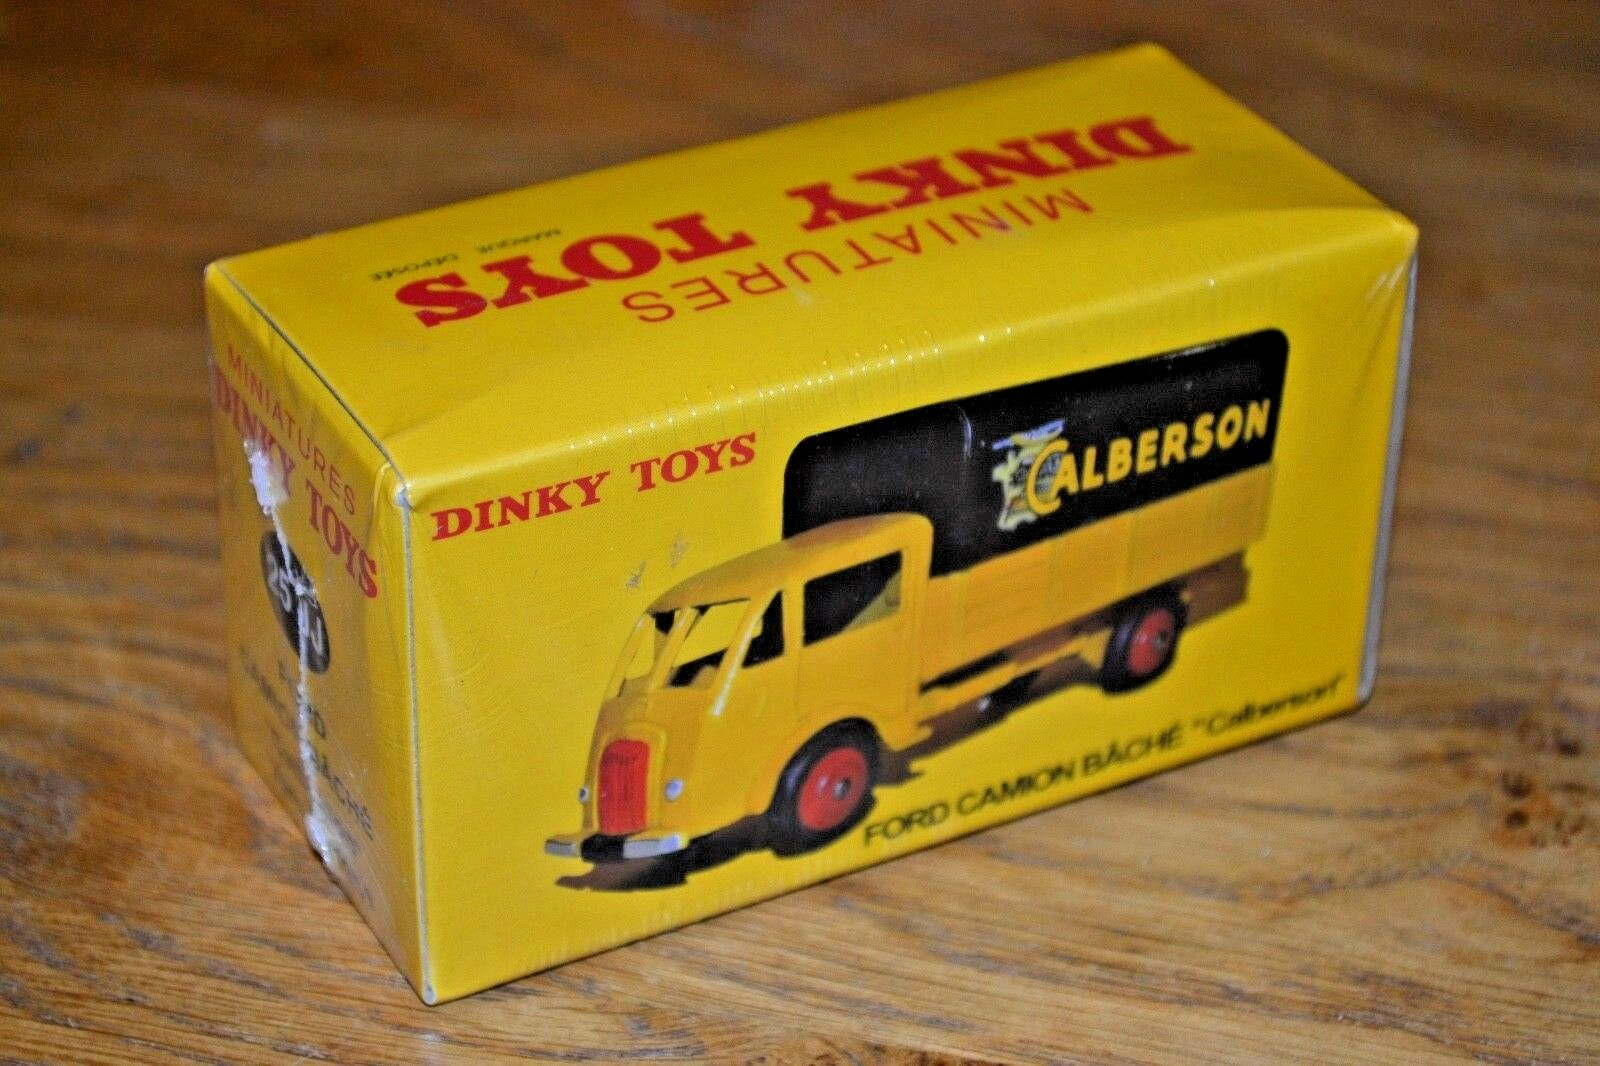 French Dinky Toys Atlas Edition Diecast Ford Camion Bache 2017 New and Unopened